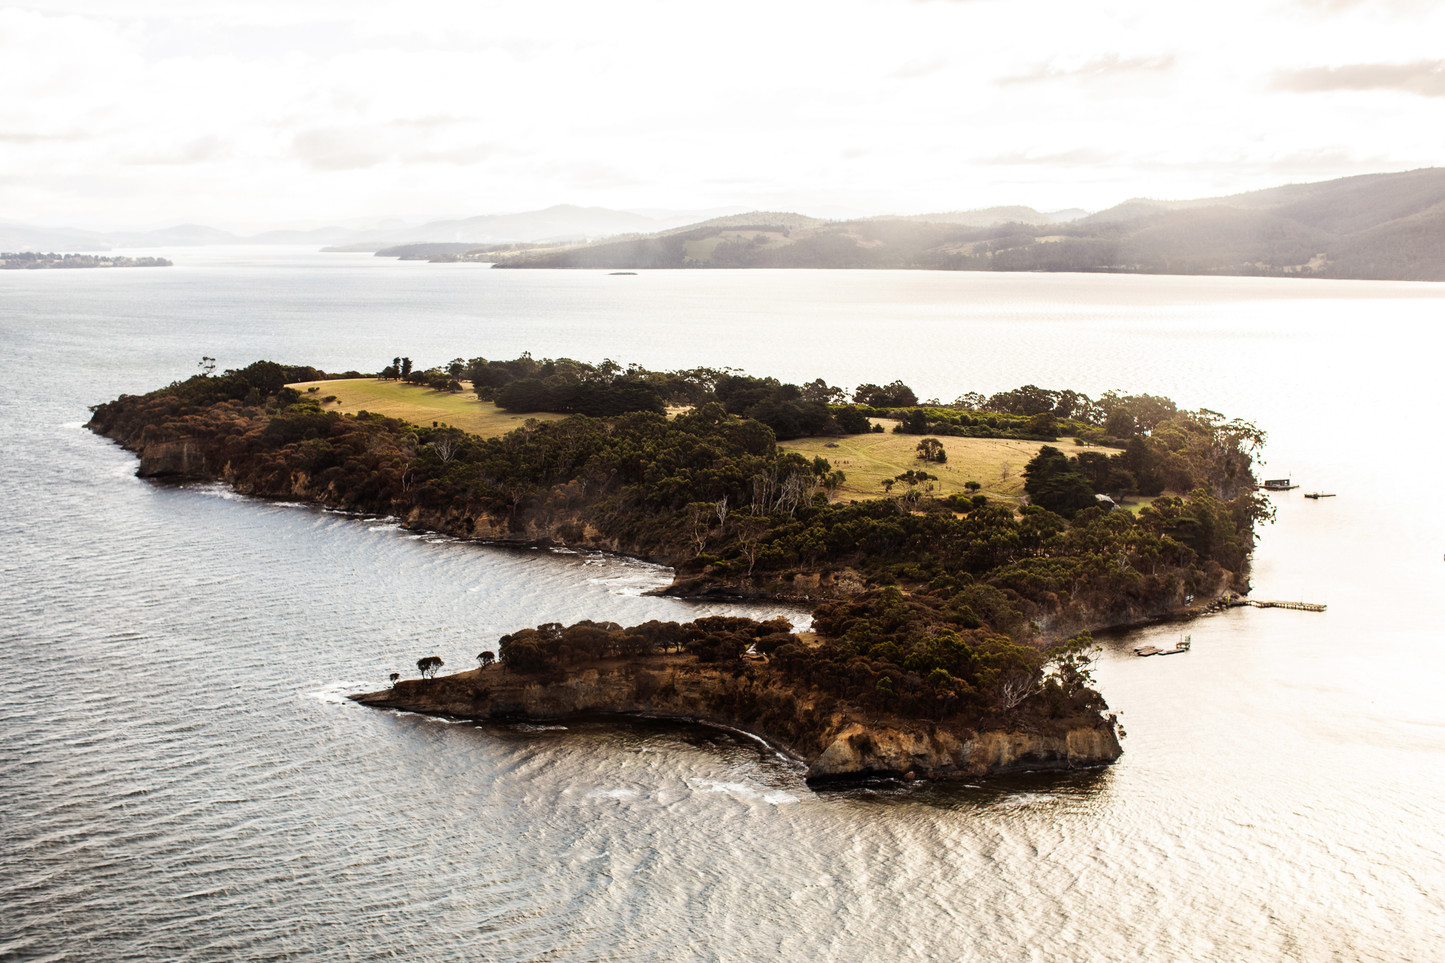 This rugged island escape has all the ingredients to reconnect to self